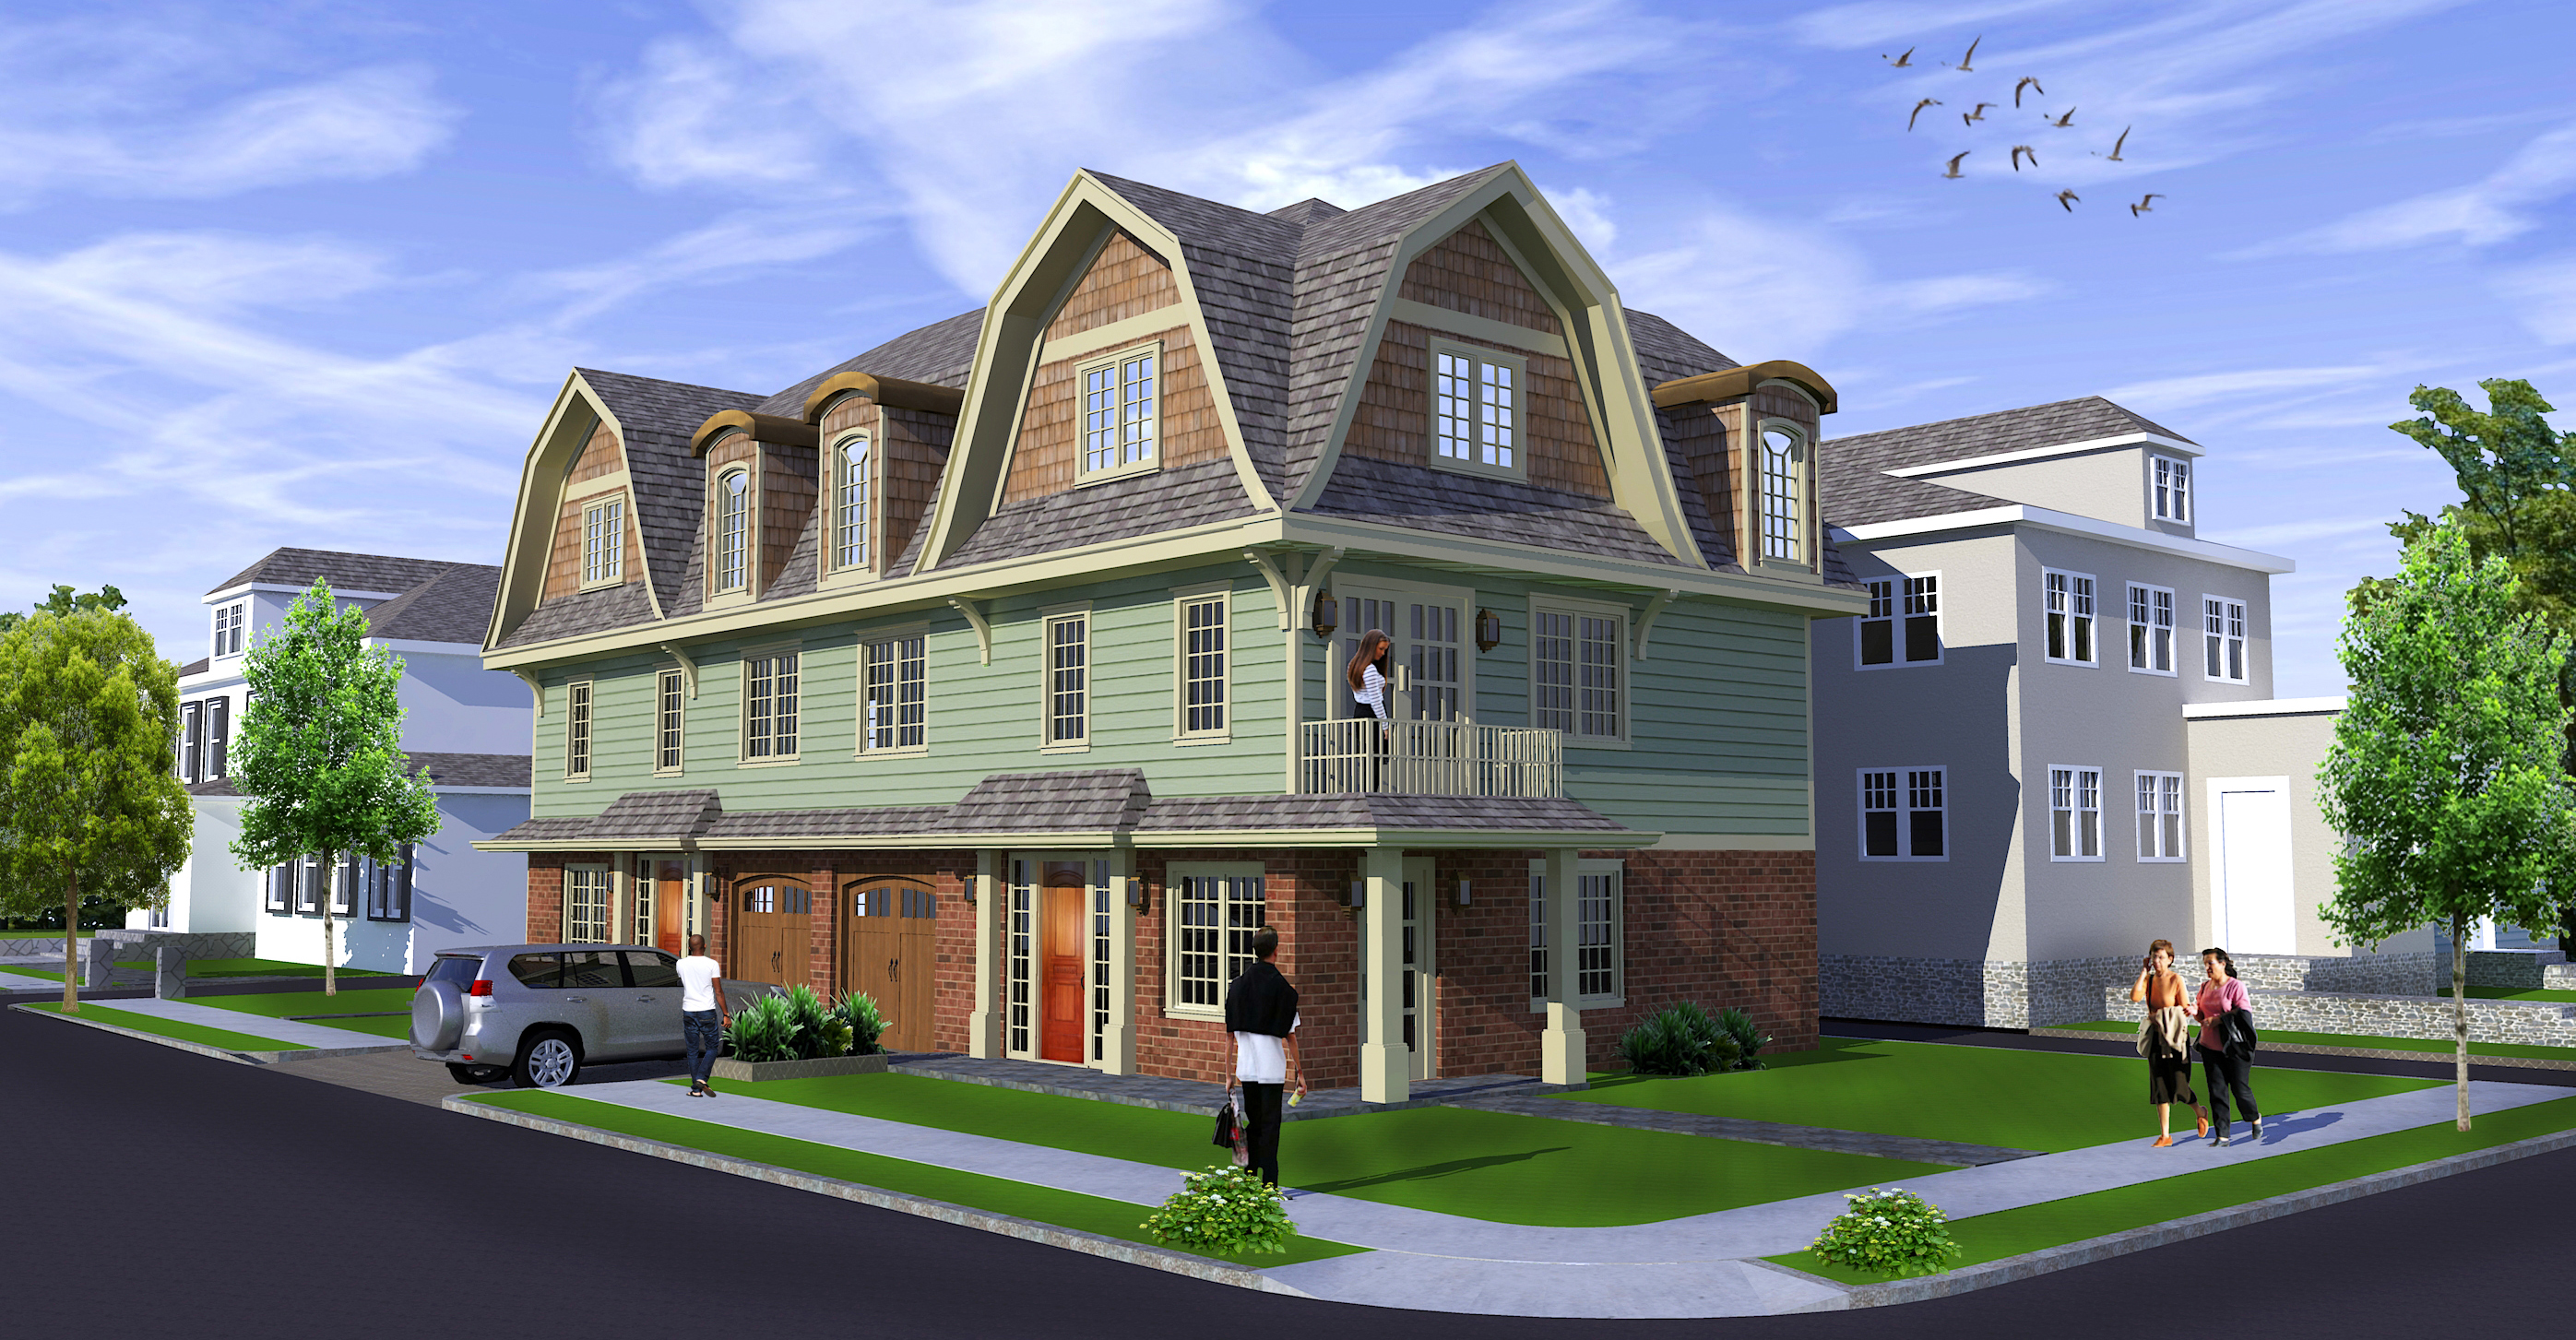 190 Brookside-Render 5-P